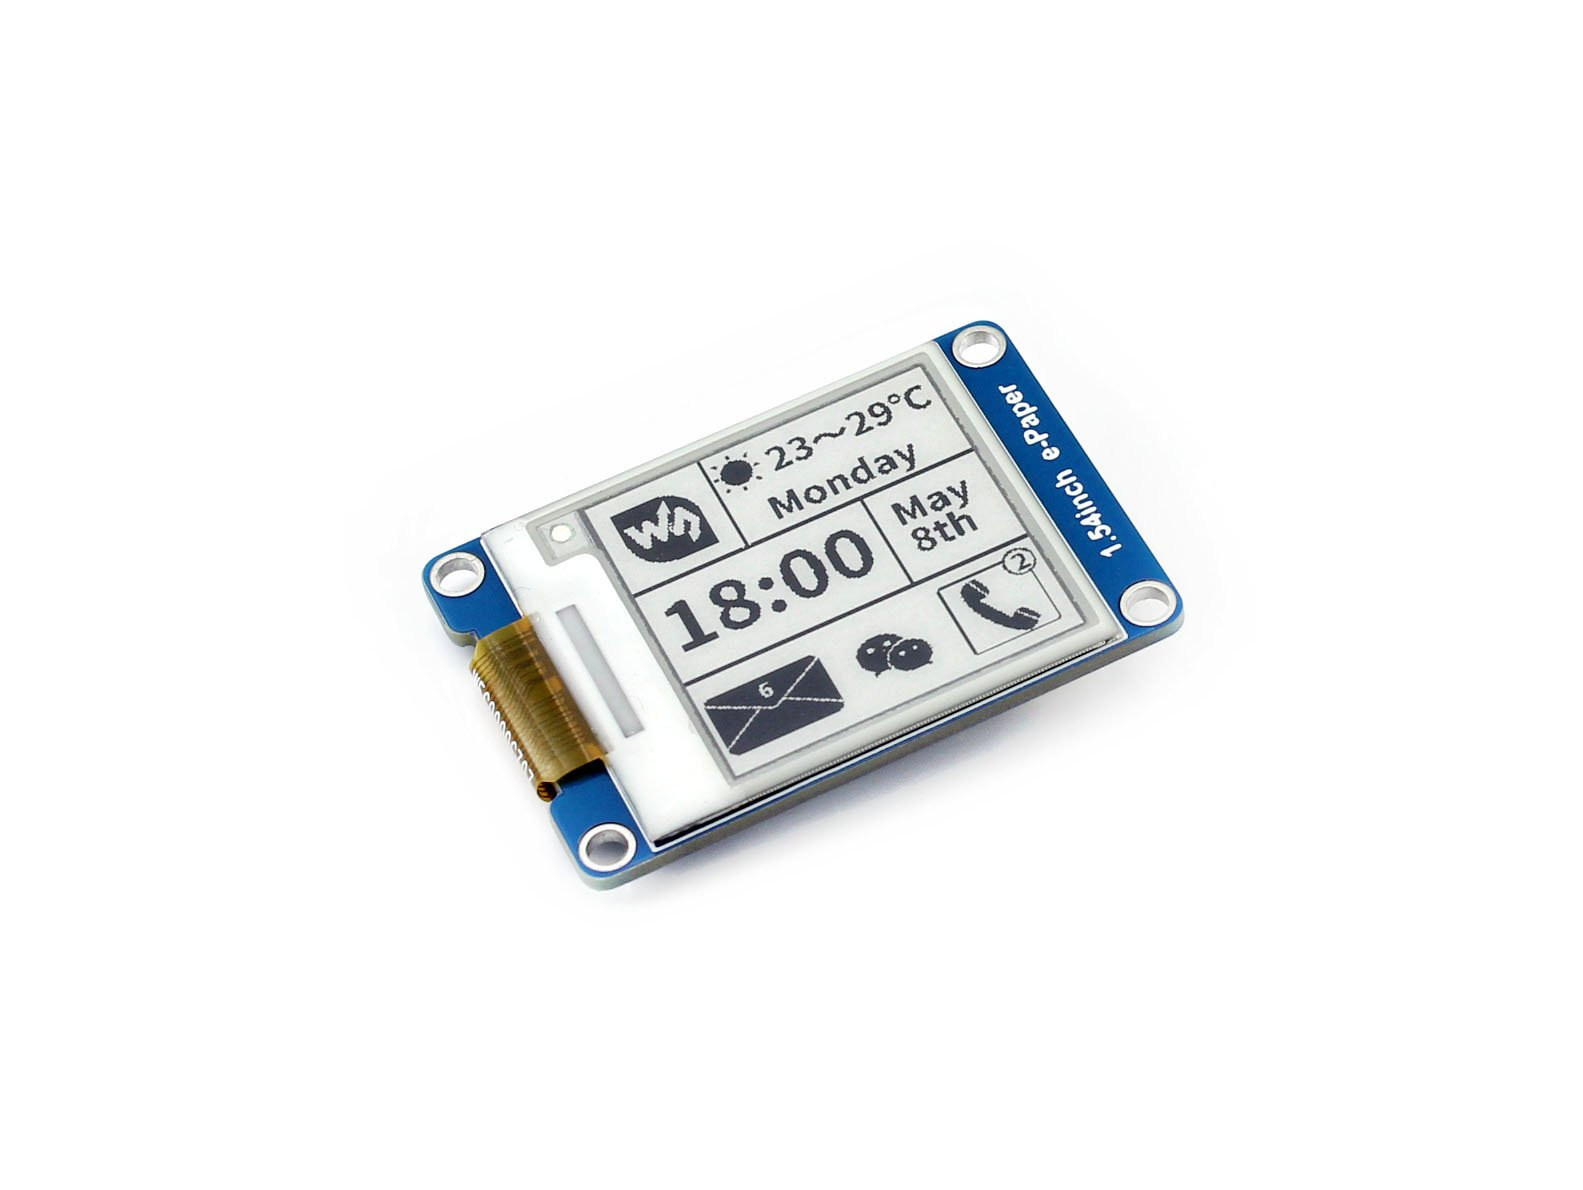 200x200, 1.54inch E-Ink display module,1.54inch e-Paper,SPI interface,Supports partial refresh by waveshare (Image #2)